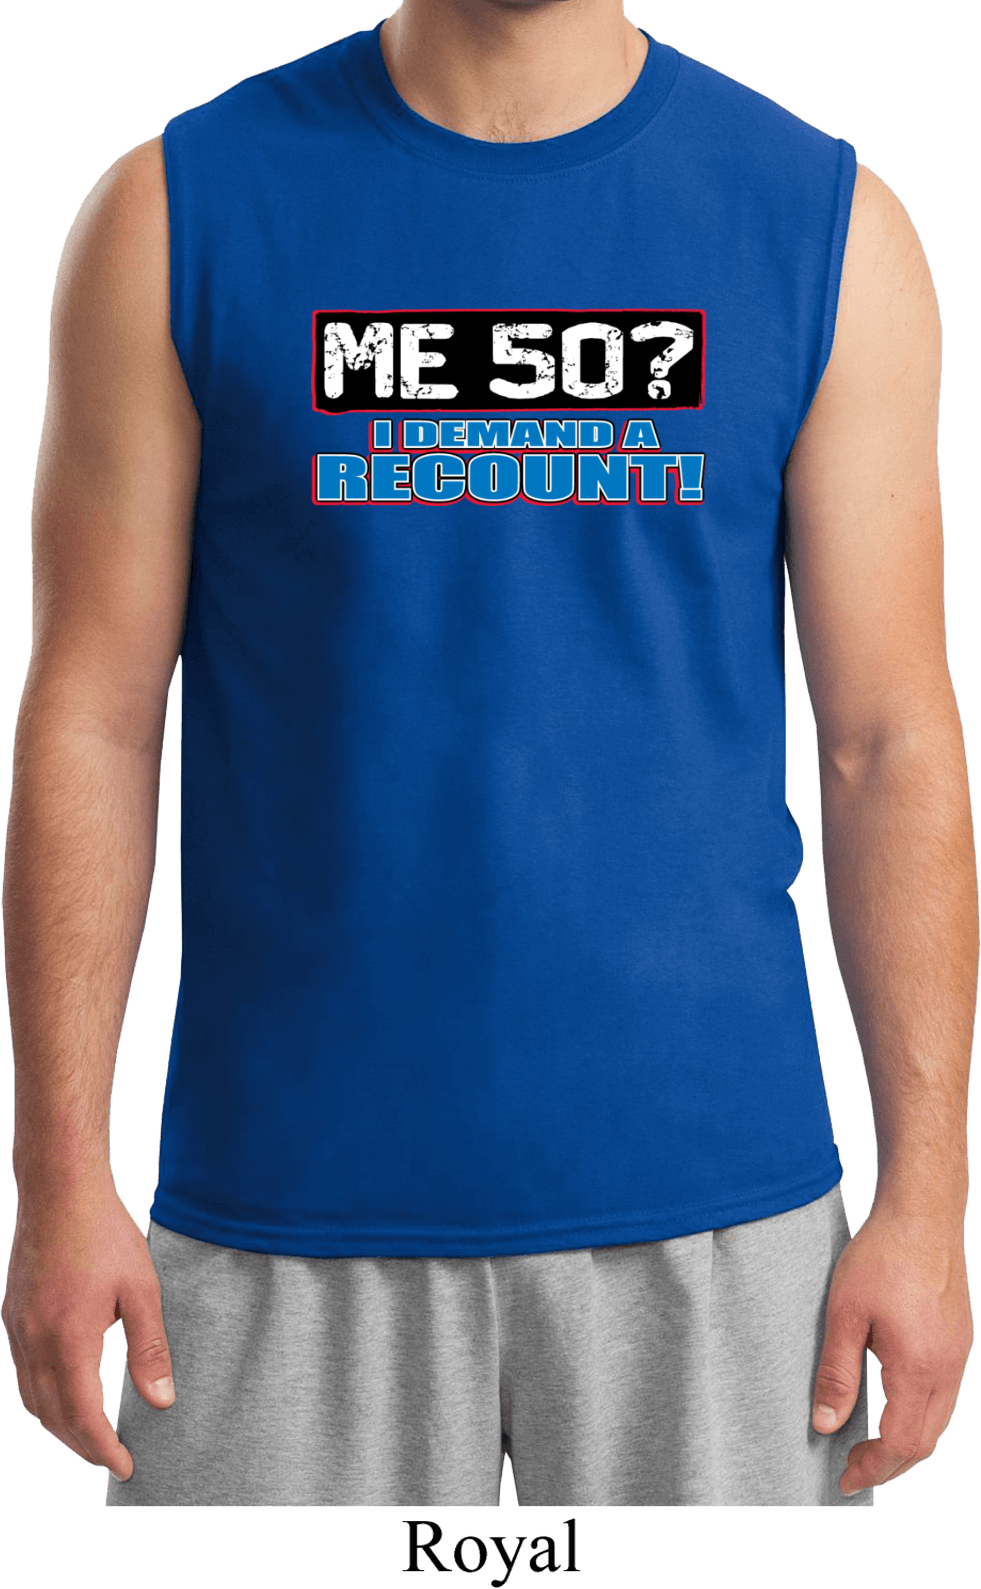 Mens funny birthday shirt me 50 muscle tee t shirt me 50 for Great shirts for guys